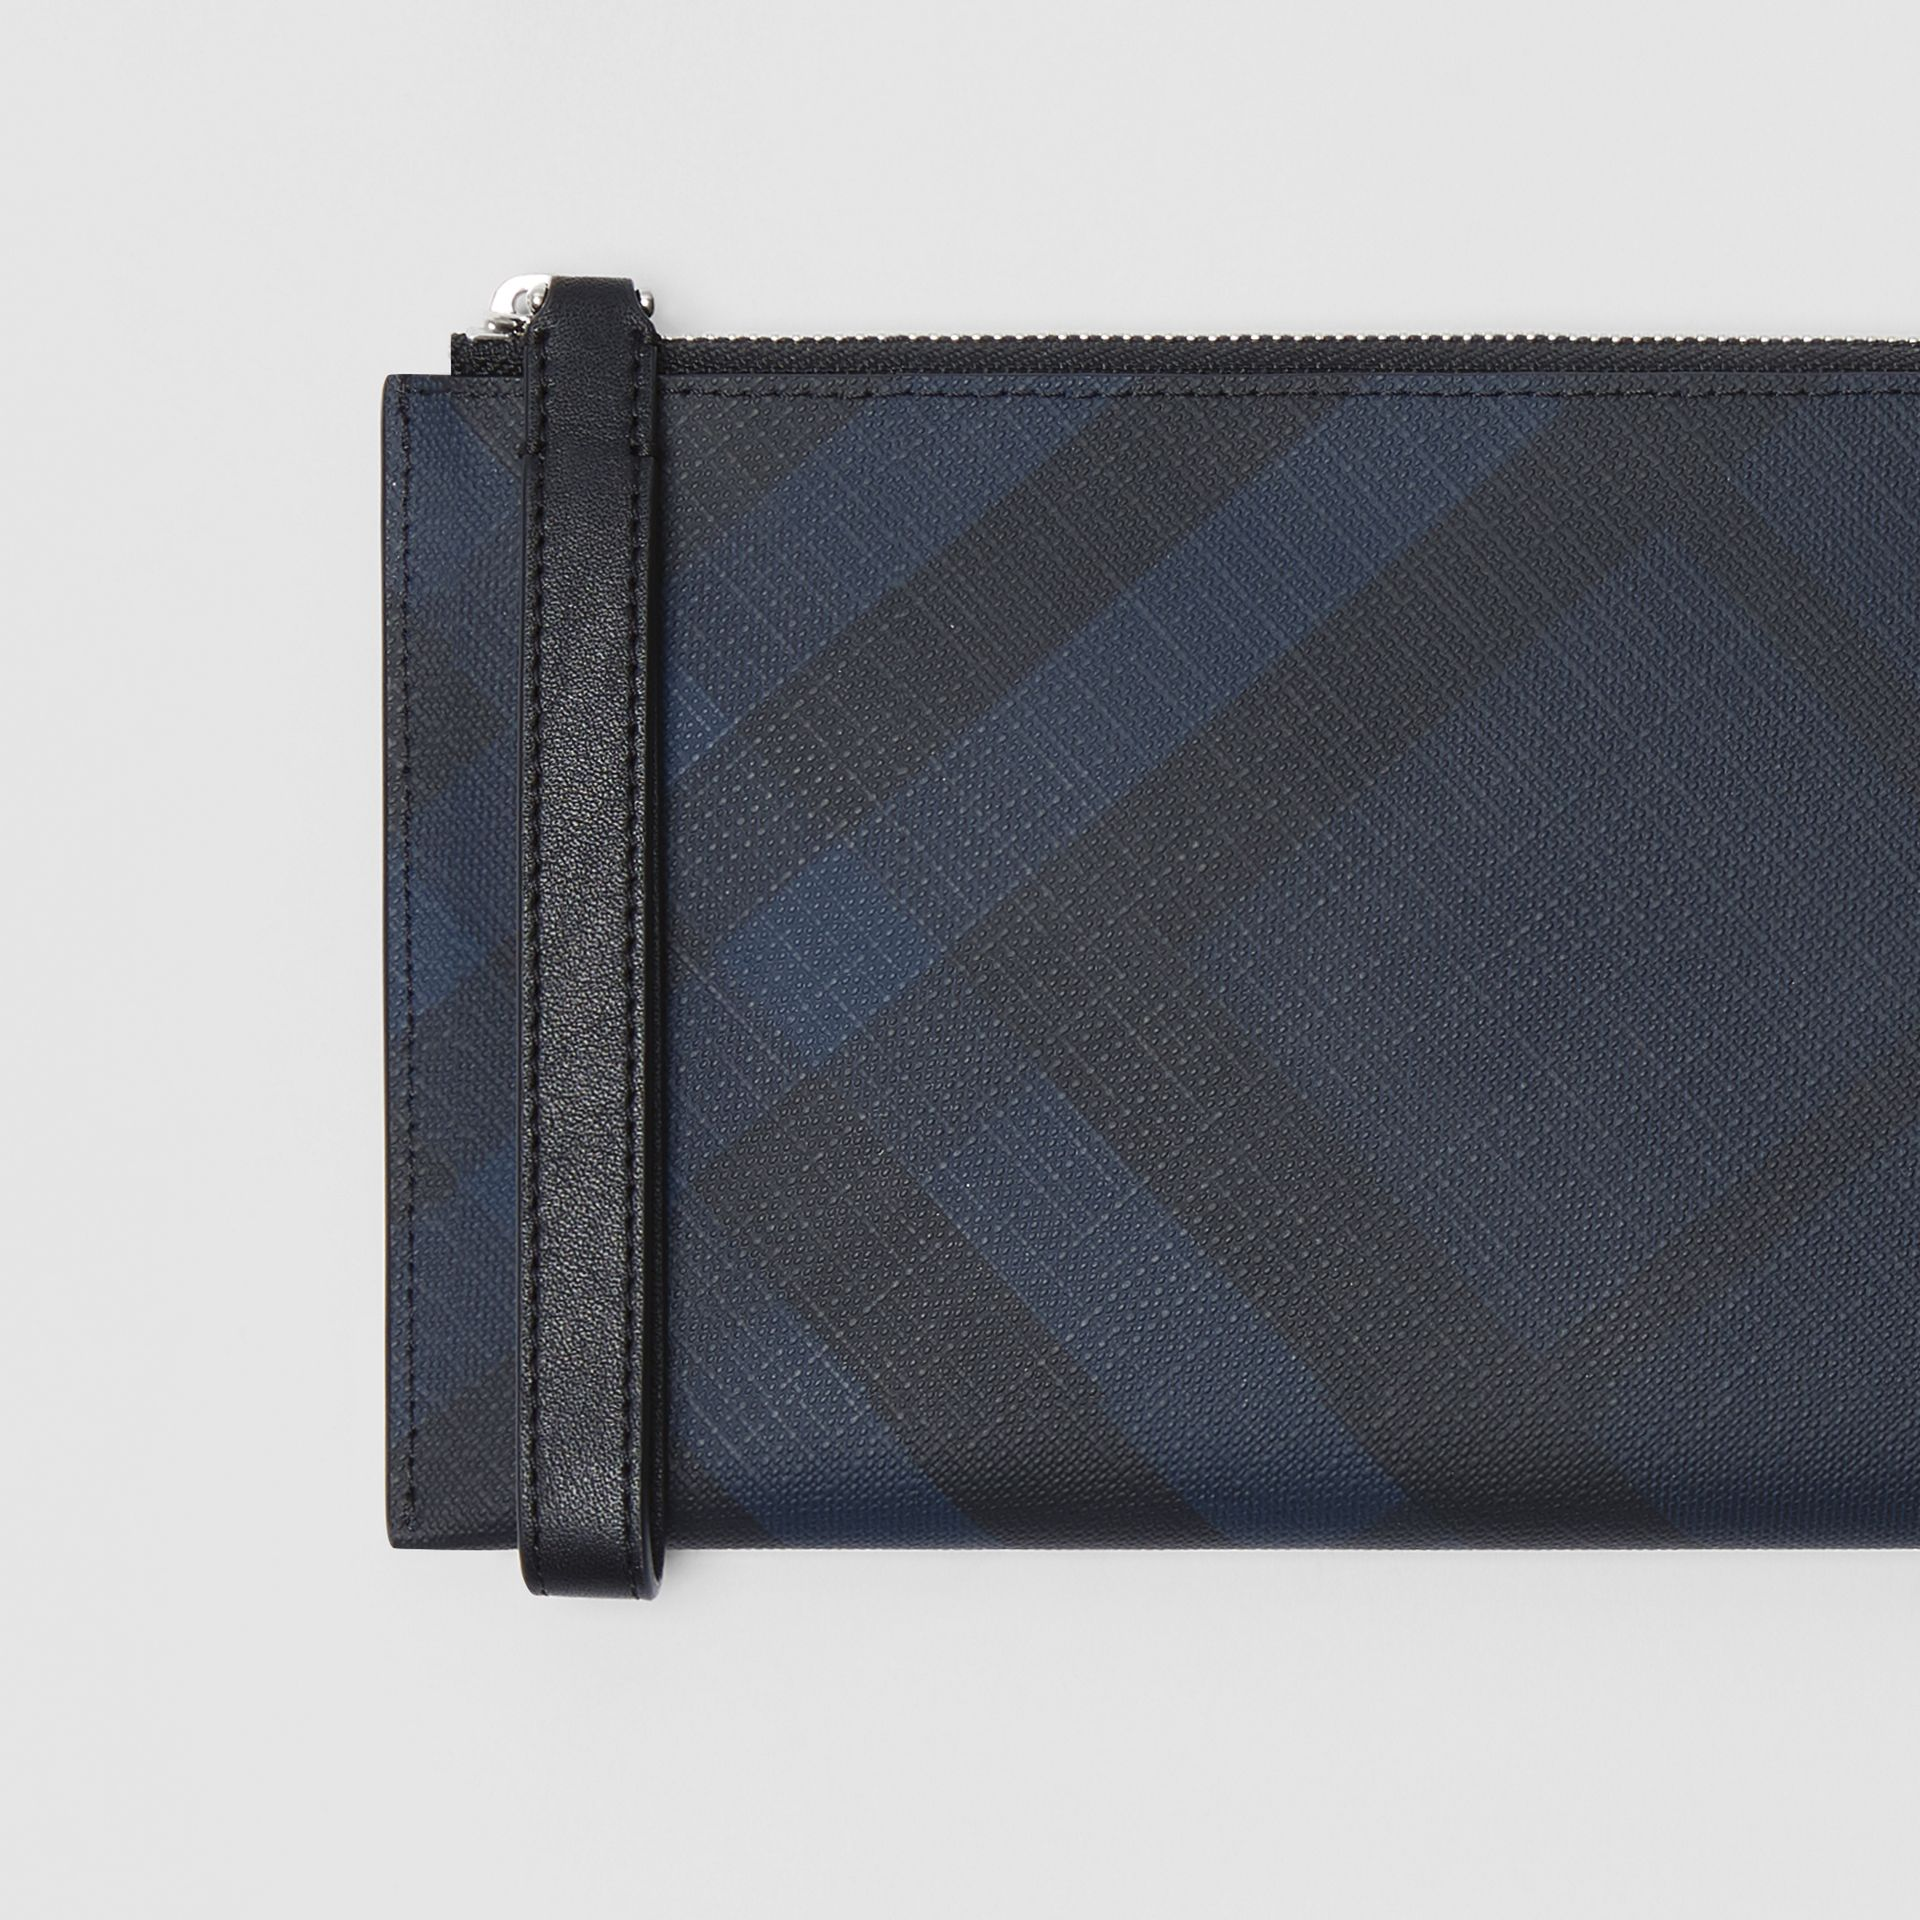 London Check and Leather Travel Wallet in Navy/black - Men | Burberry Canada - gallery image 1